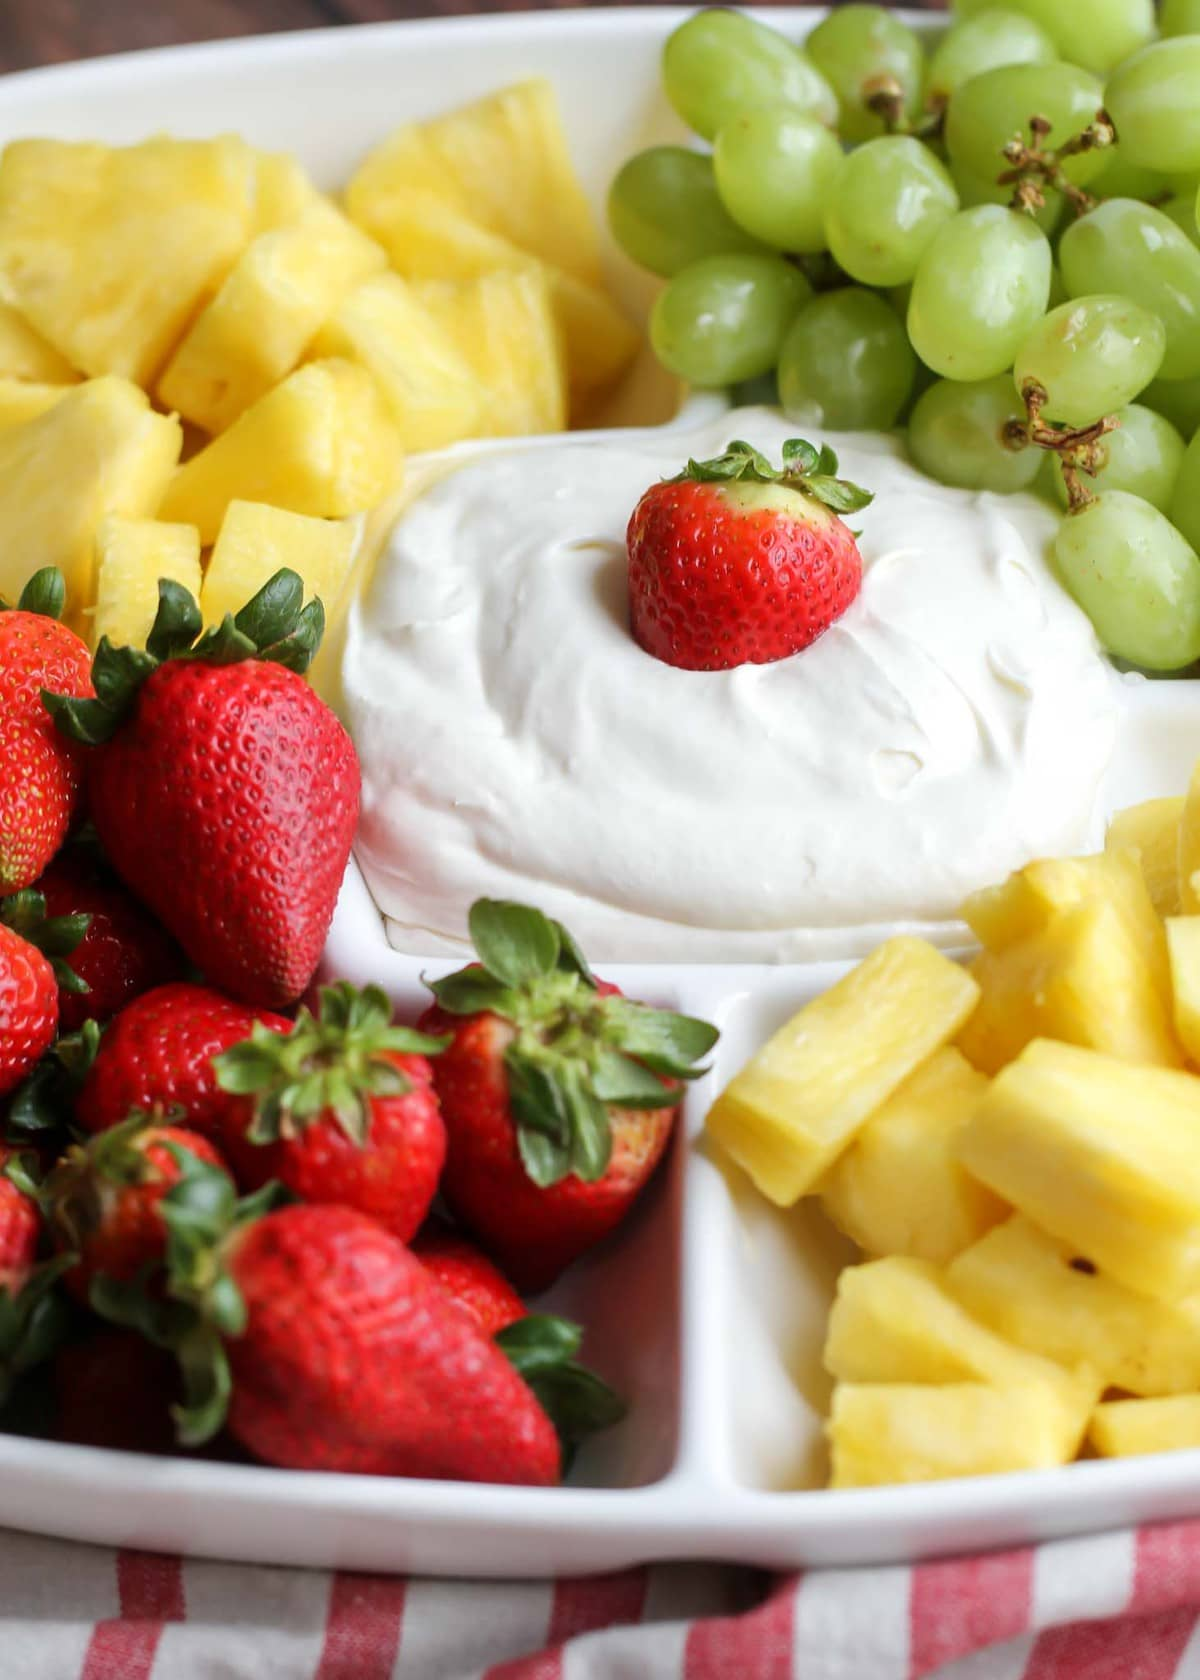 Easy Cream Cheese Fruit Dip Lil Luna